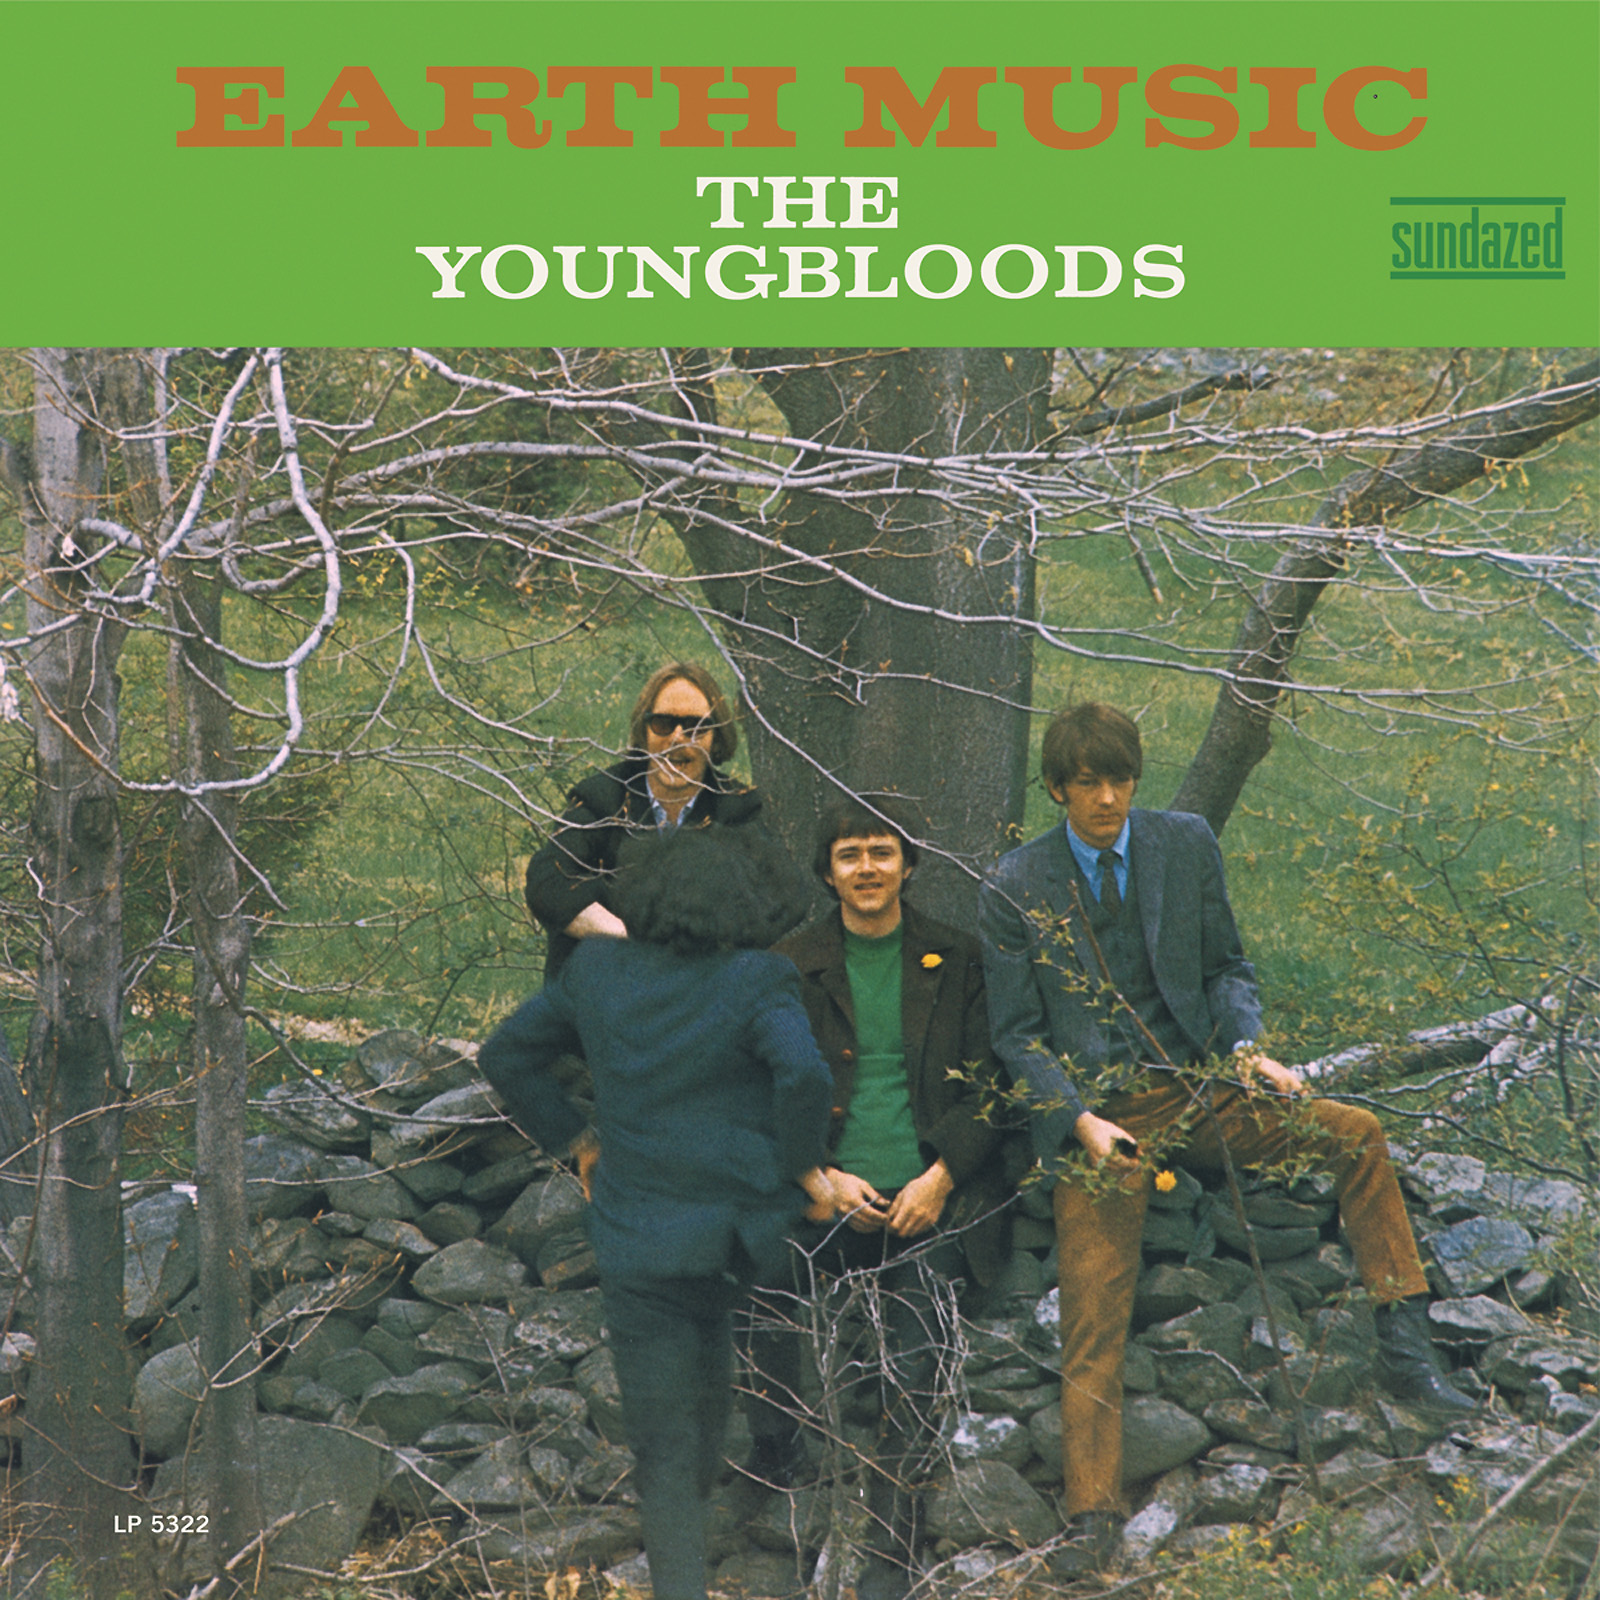 Youngbloods - Earth Music MONO Edition LP